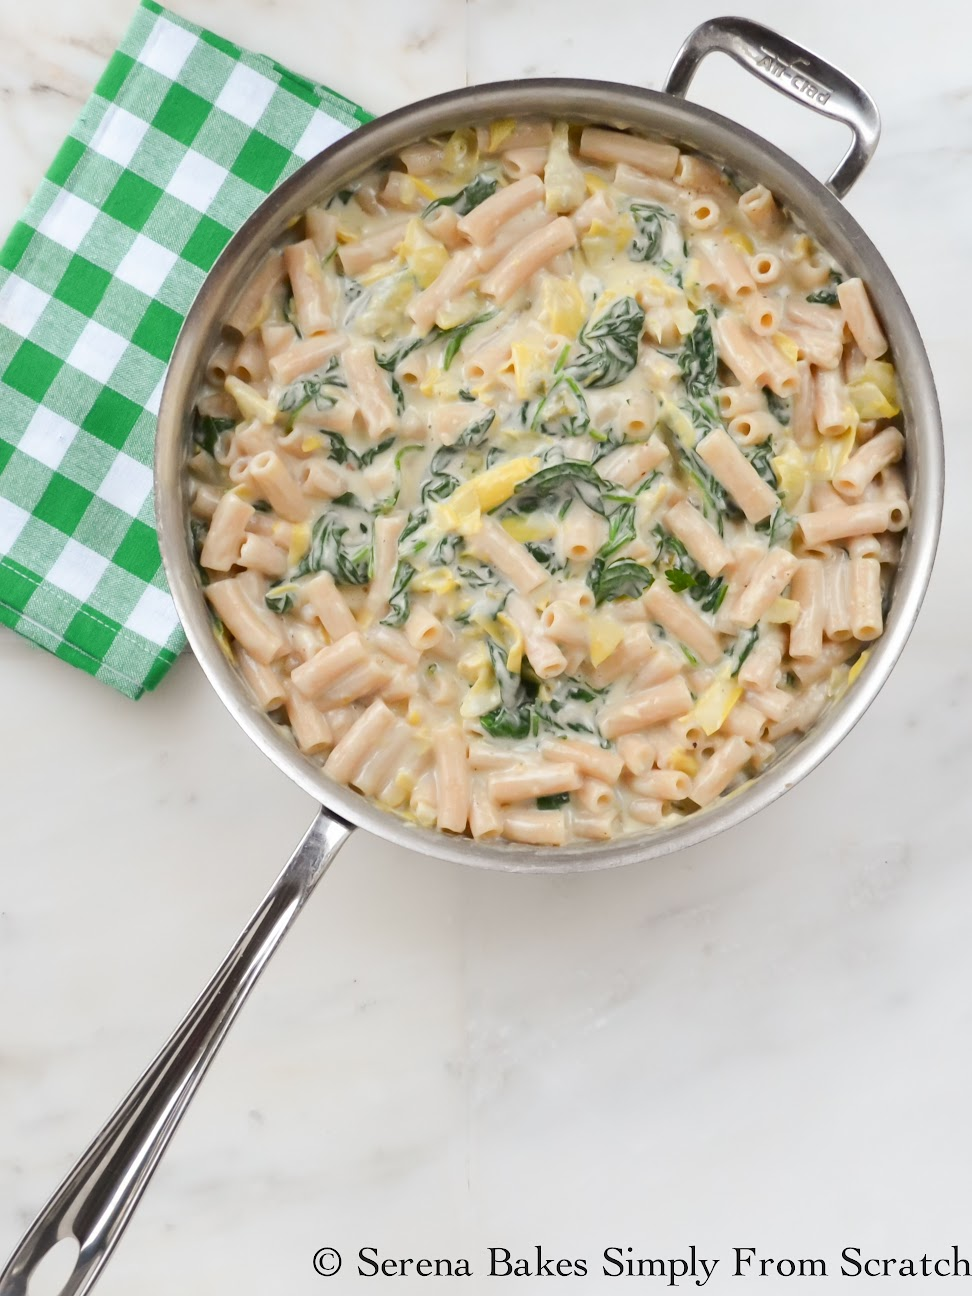 One Skillet Spinach Artichoke Pasta With A Gluten Free Option. No cooking pasta separately required!